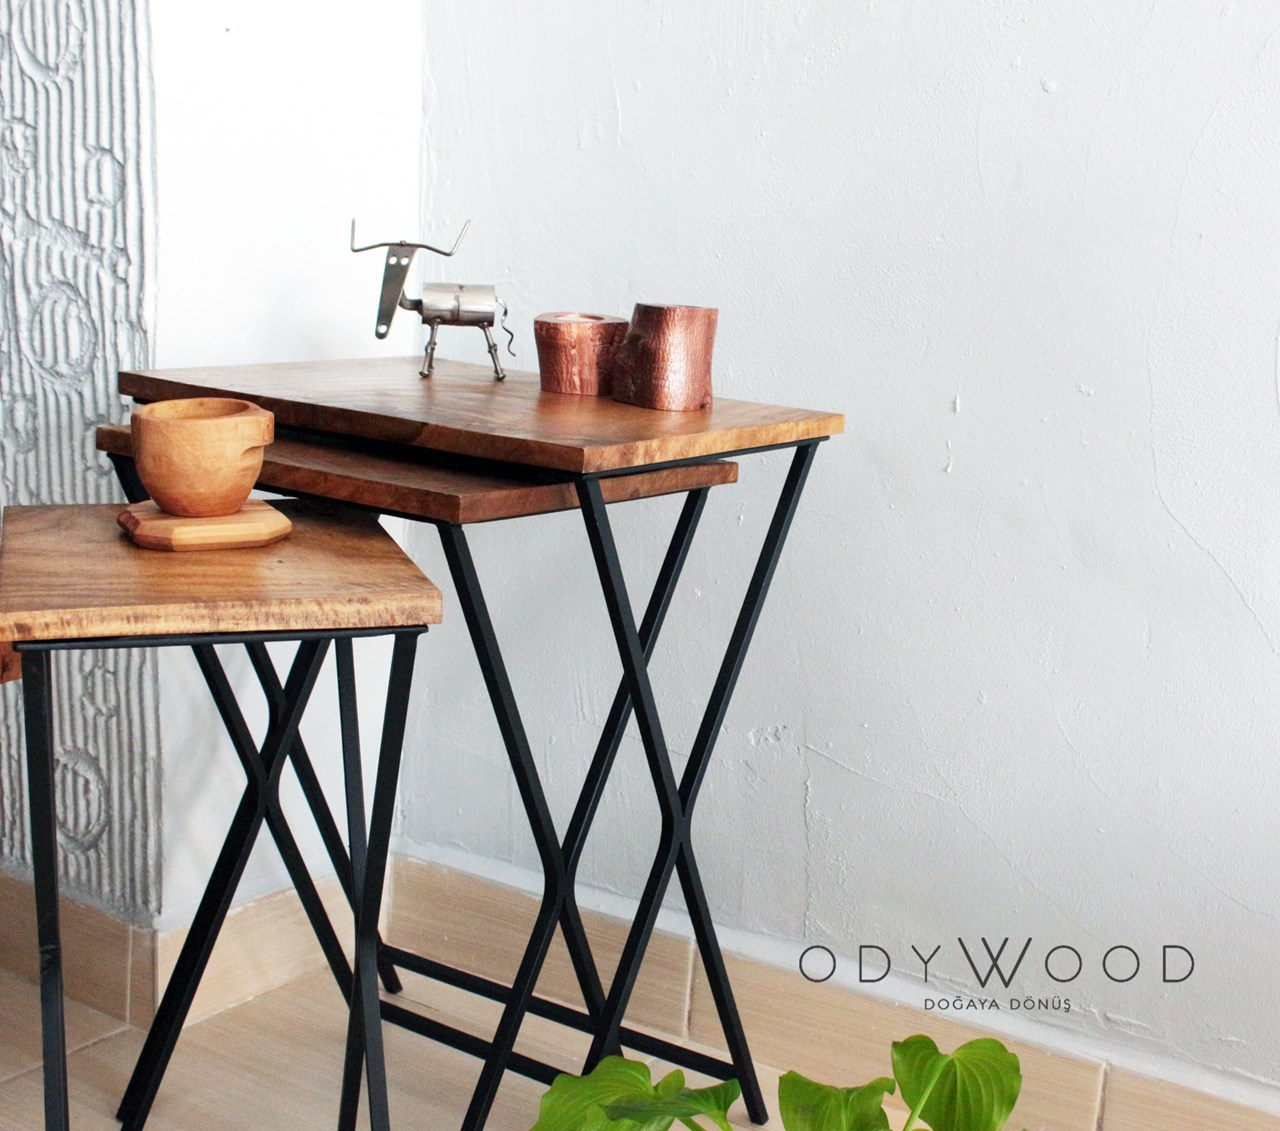 Walx Walnut Wood Side Table'in resmi